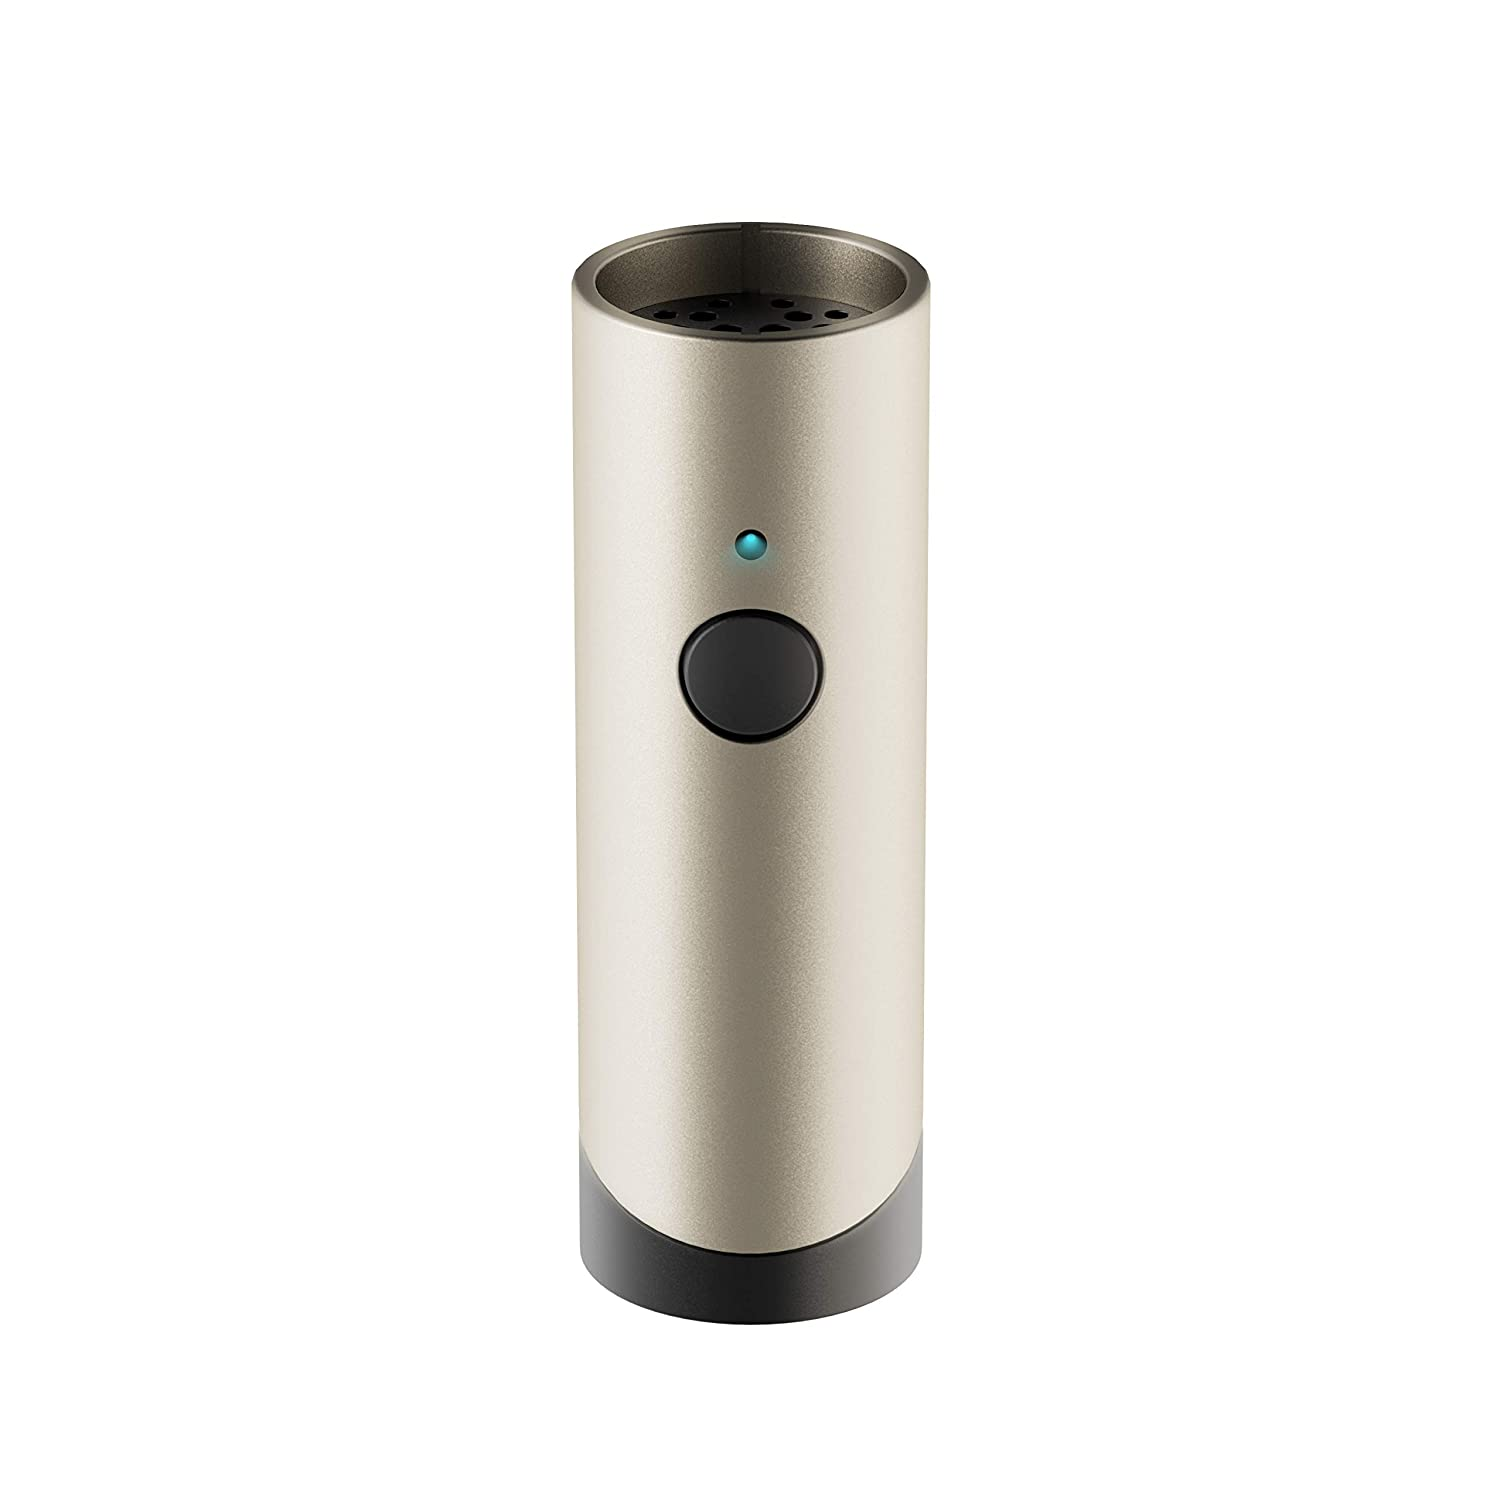 Atmotube PLUS: Portable Outdoor and Indoor Air Quality Monitor [VOCs, Formaldehyde, Temperature, Humidity and Barometric Pressure Gauge] NotAnotherOne